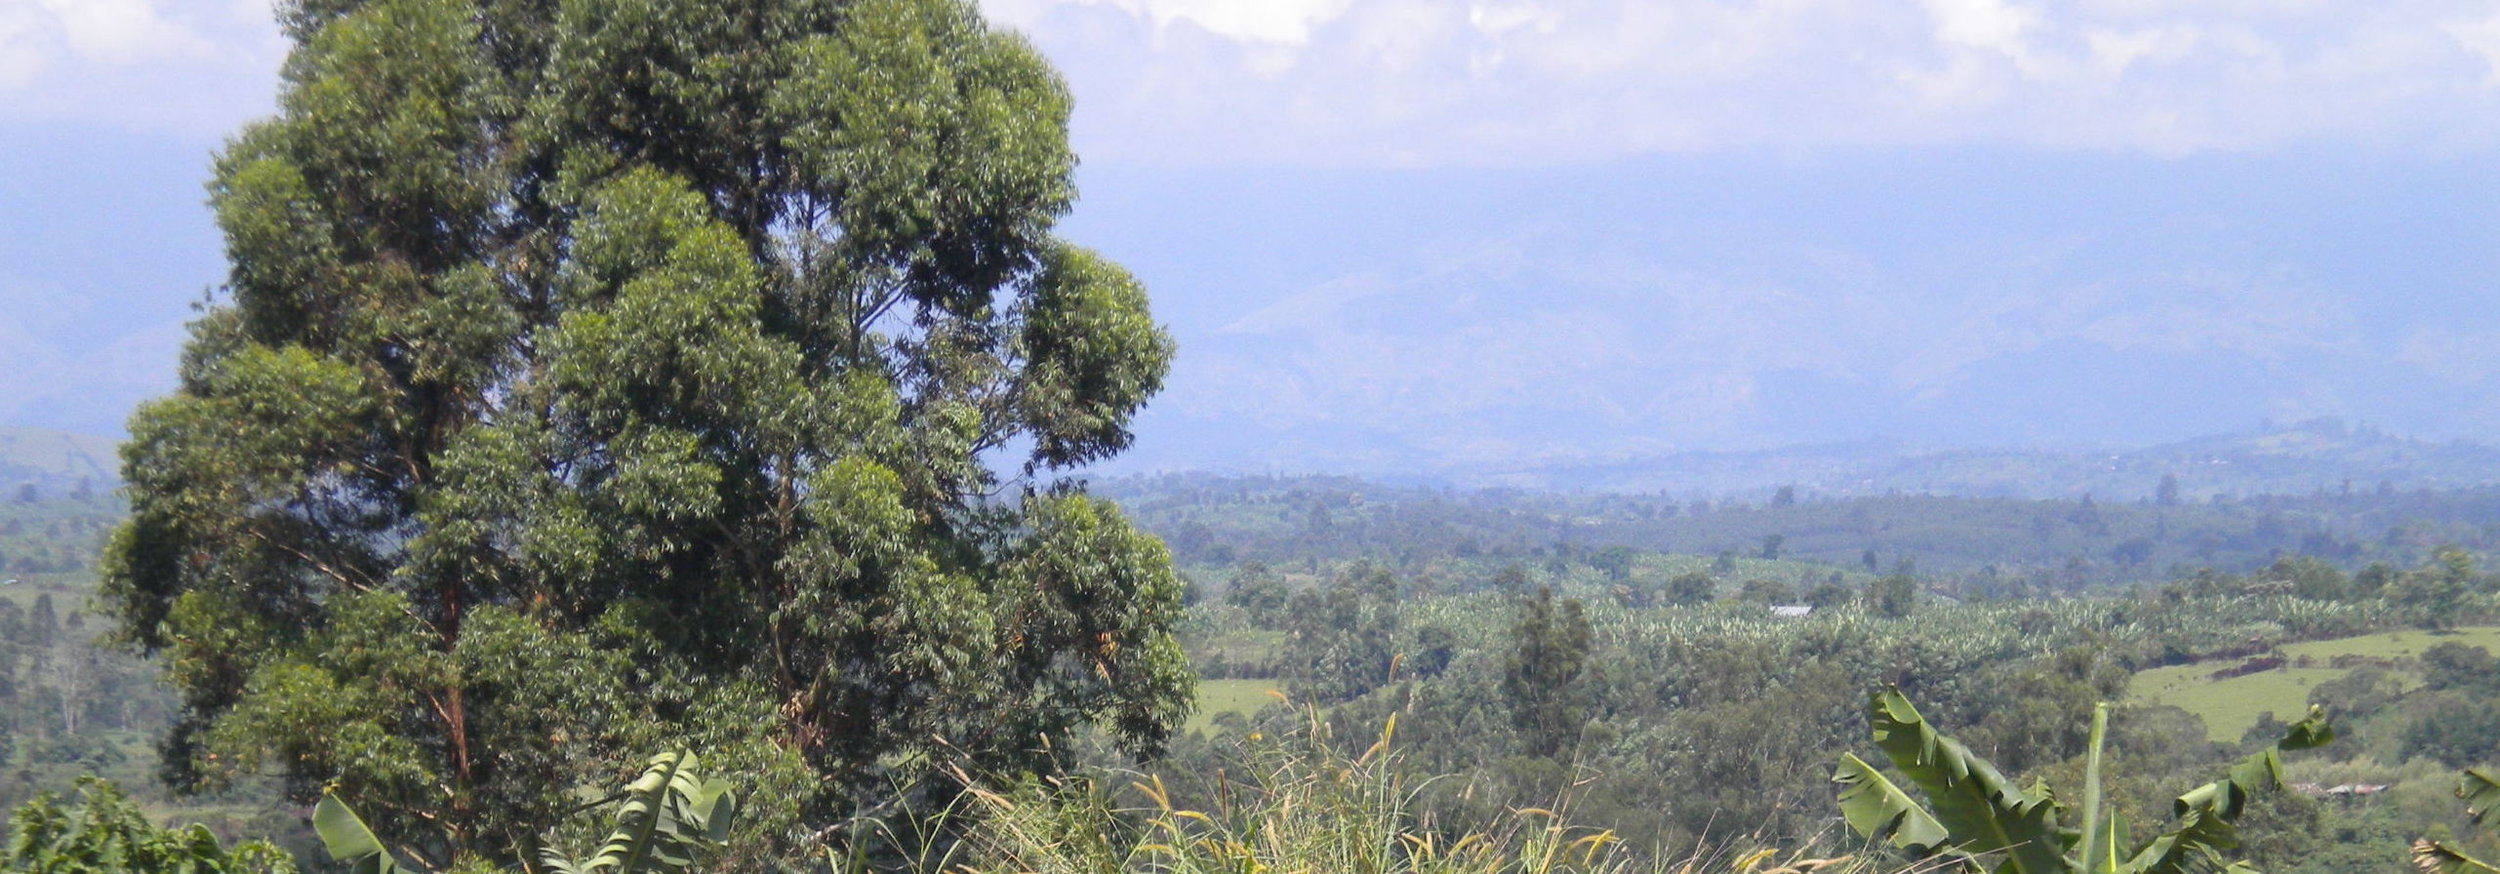 View towards the Ruwenzori Mountains